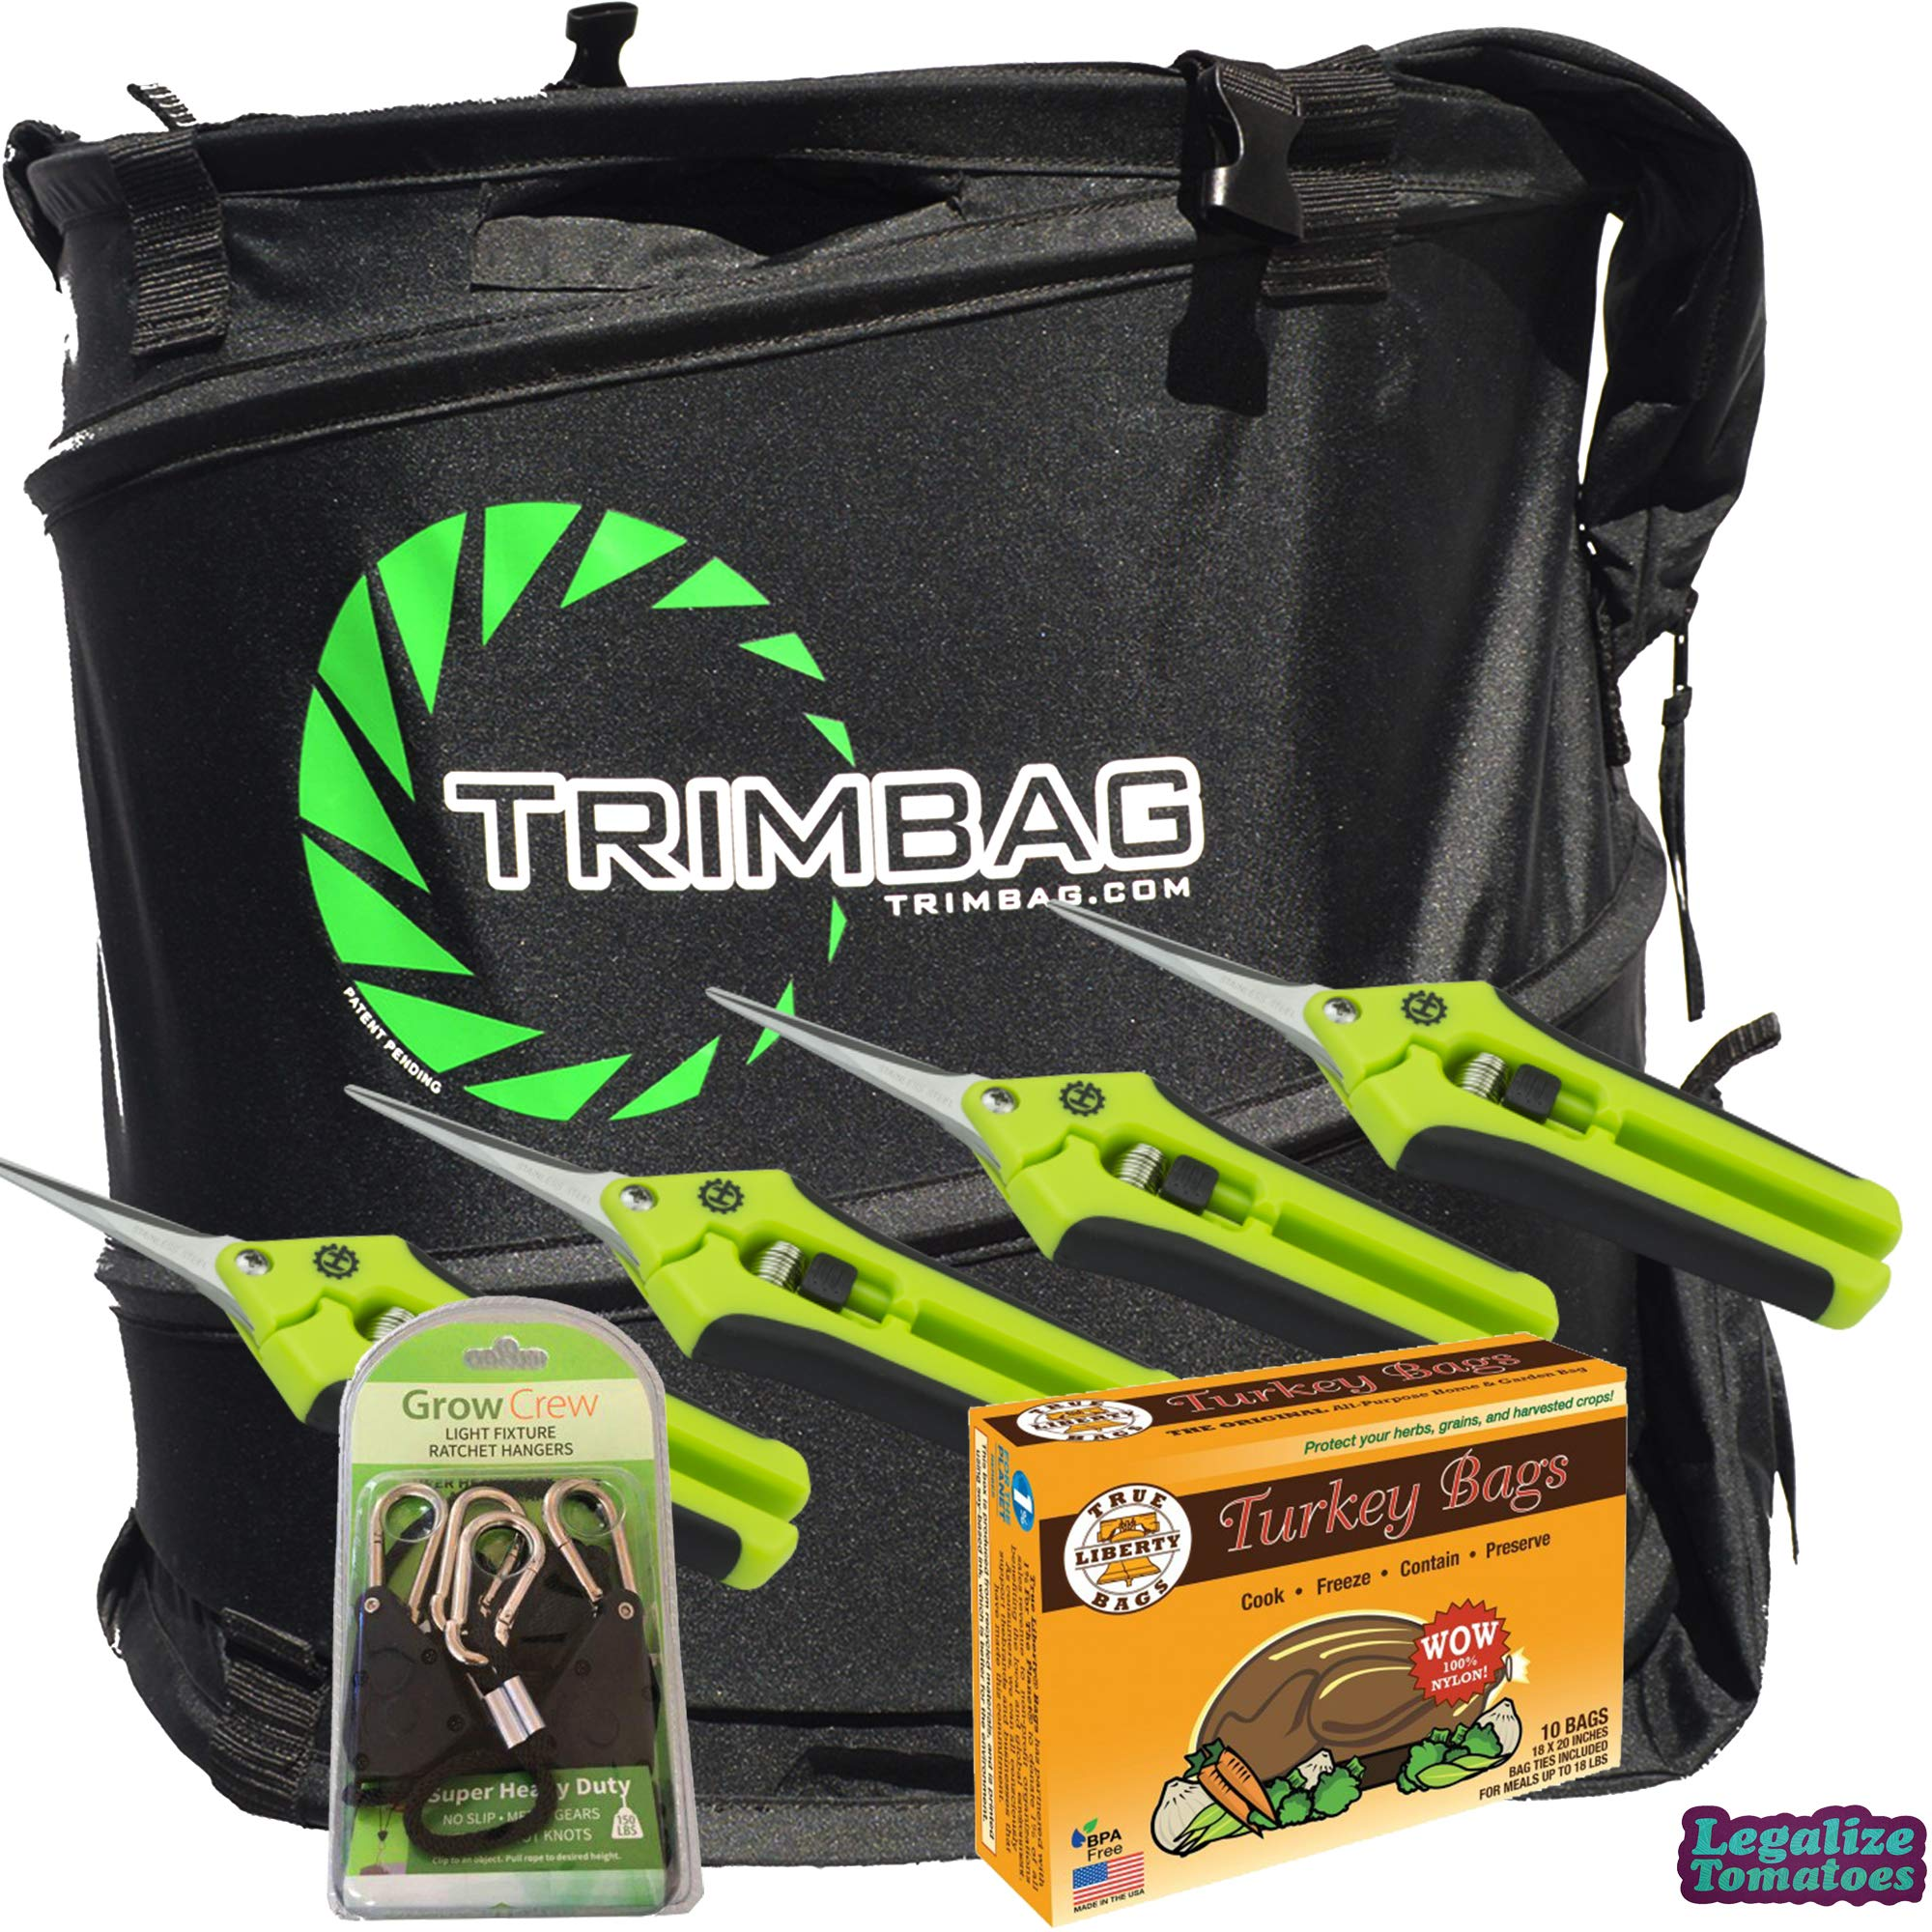 Trimbag Premium Complete Dry Trimming Kit Bundle with 4 Common Culture Trimming Scissors, 1 Pair of Grow Crew Ratchet Hangers, 10 Pack of Turkey Bags and Accessories (7 Items) by Trimbag